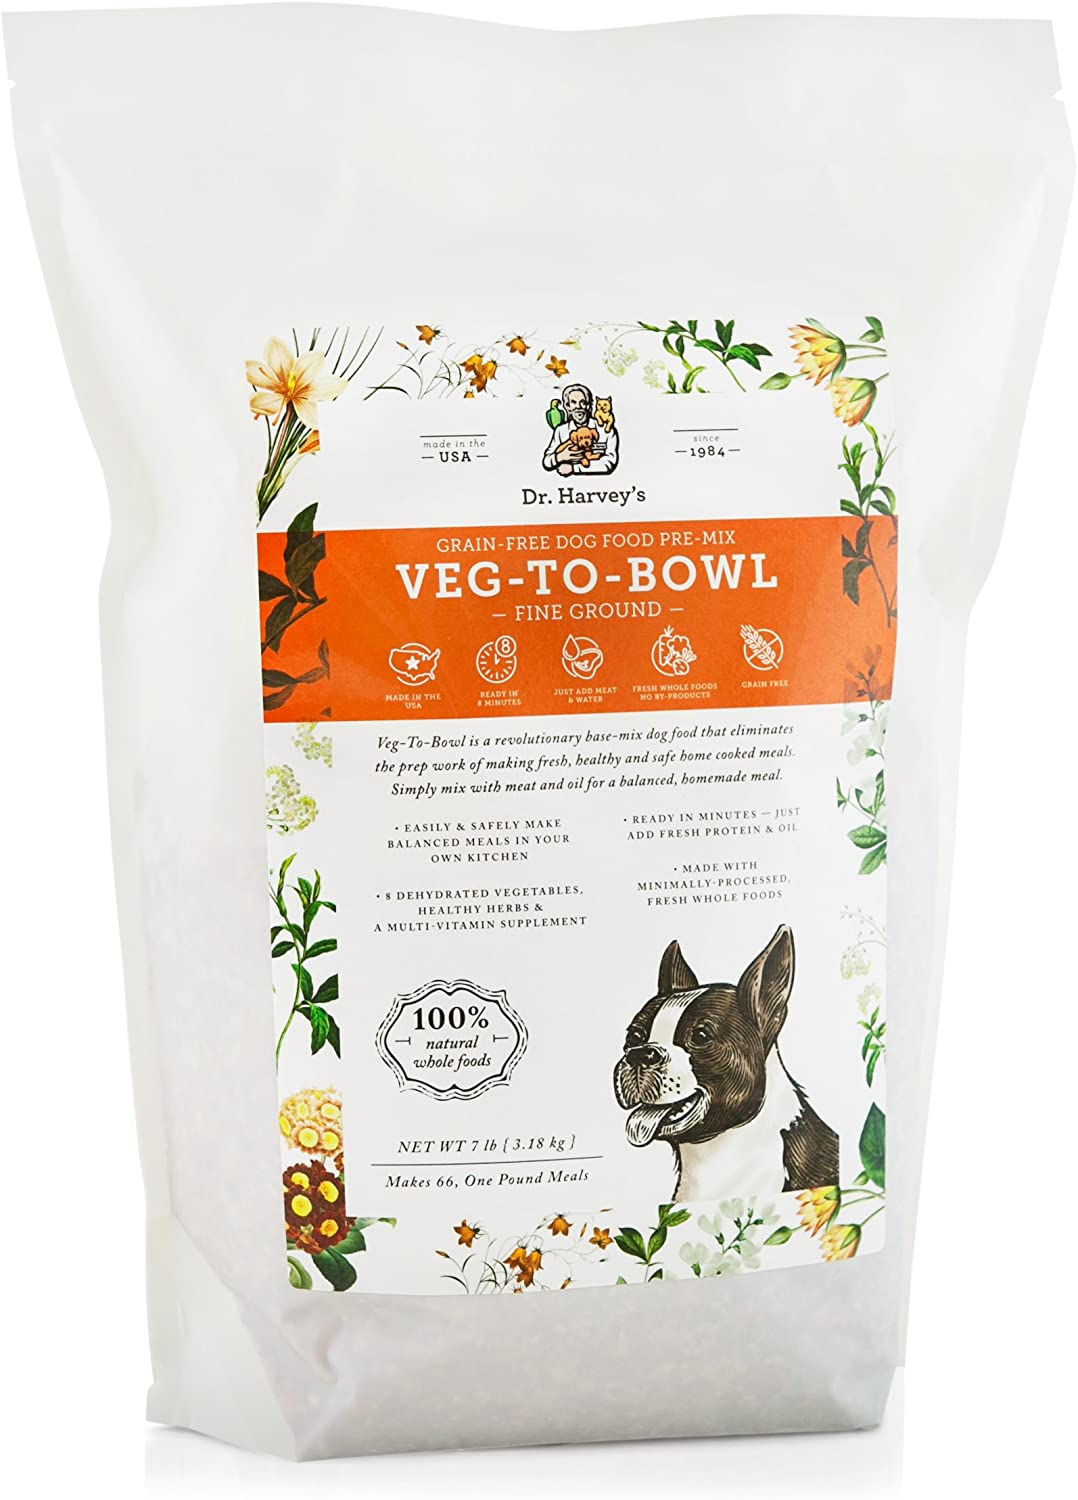 Dr. Harvey's VegtoBowl Fine Ground Dog Food, Human Grade Dehydrated Base Mix for Dogs, Grain Free Holistic Mix for Small Dogs or Picky Eaters